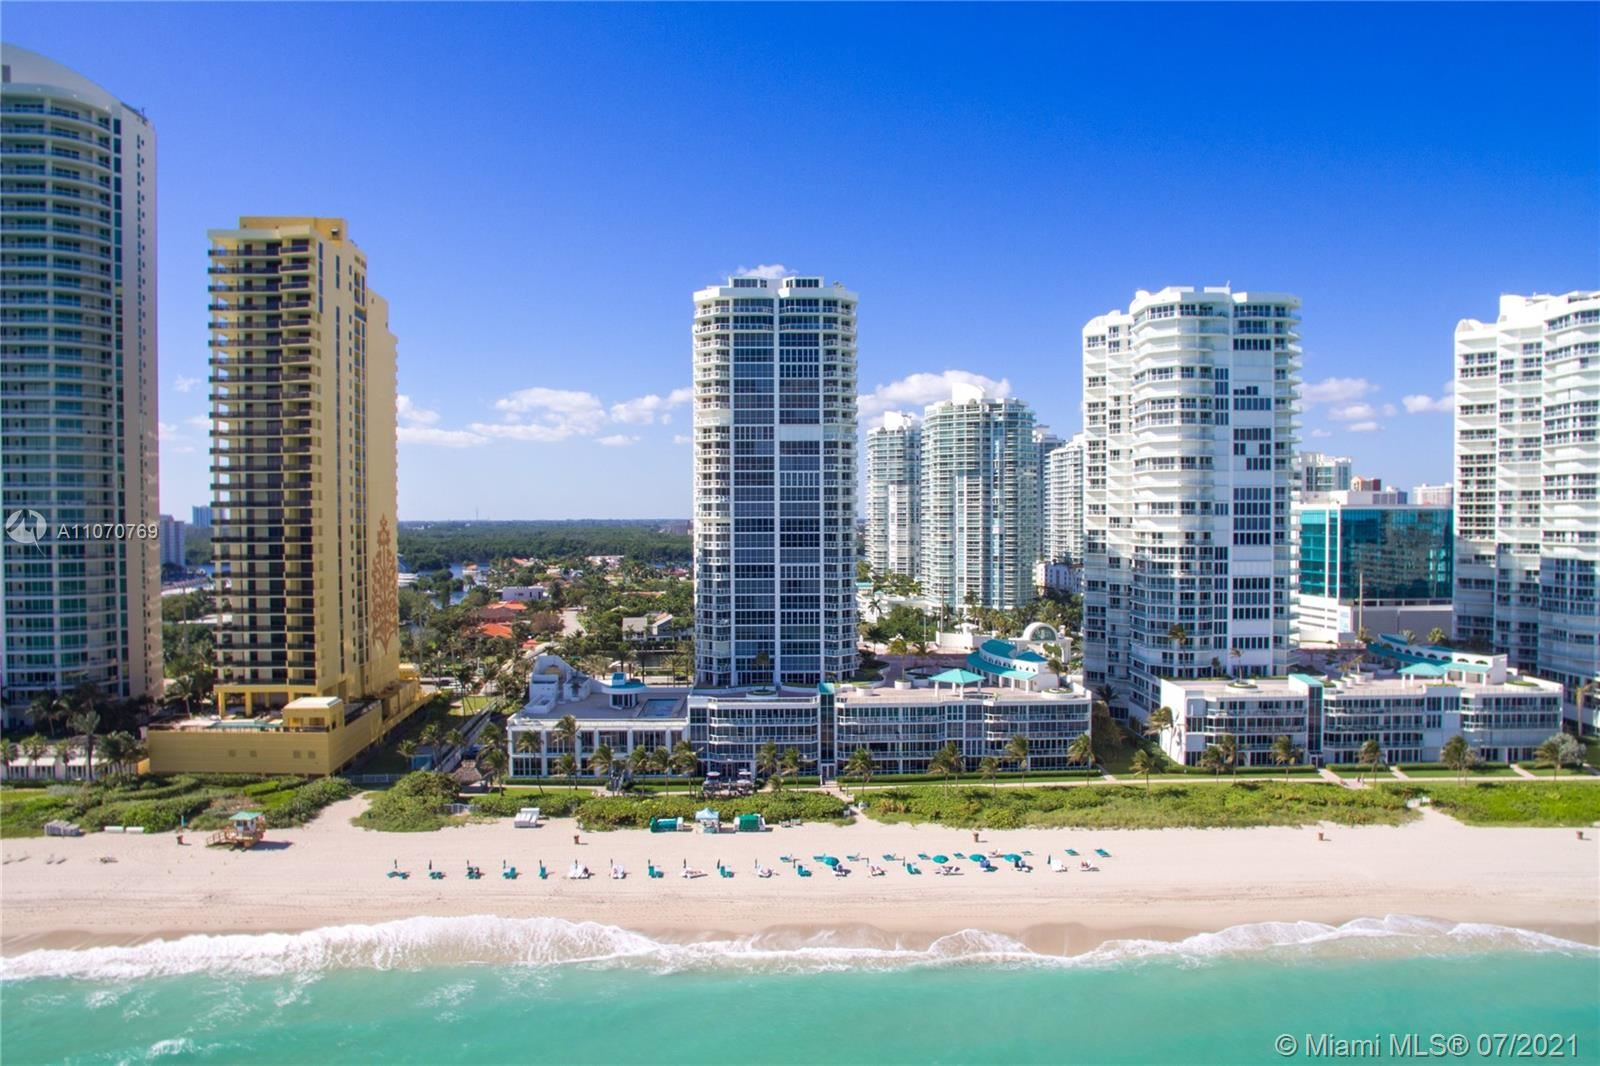 16425 Collins Ave #912, Sunny Isles, FL 33160 - #: A11070769